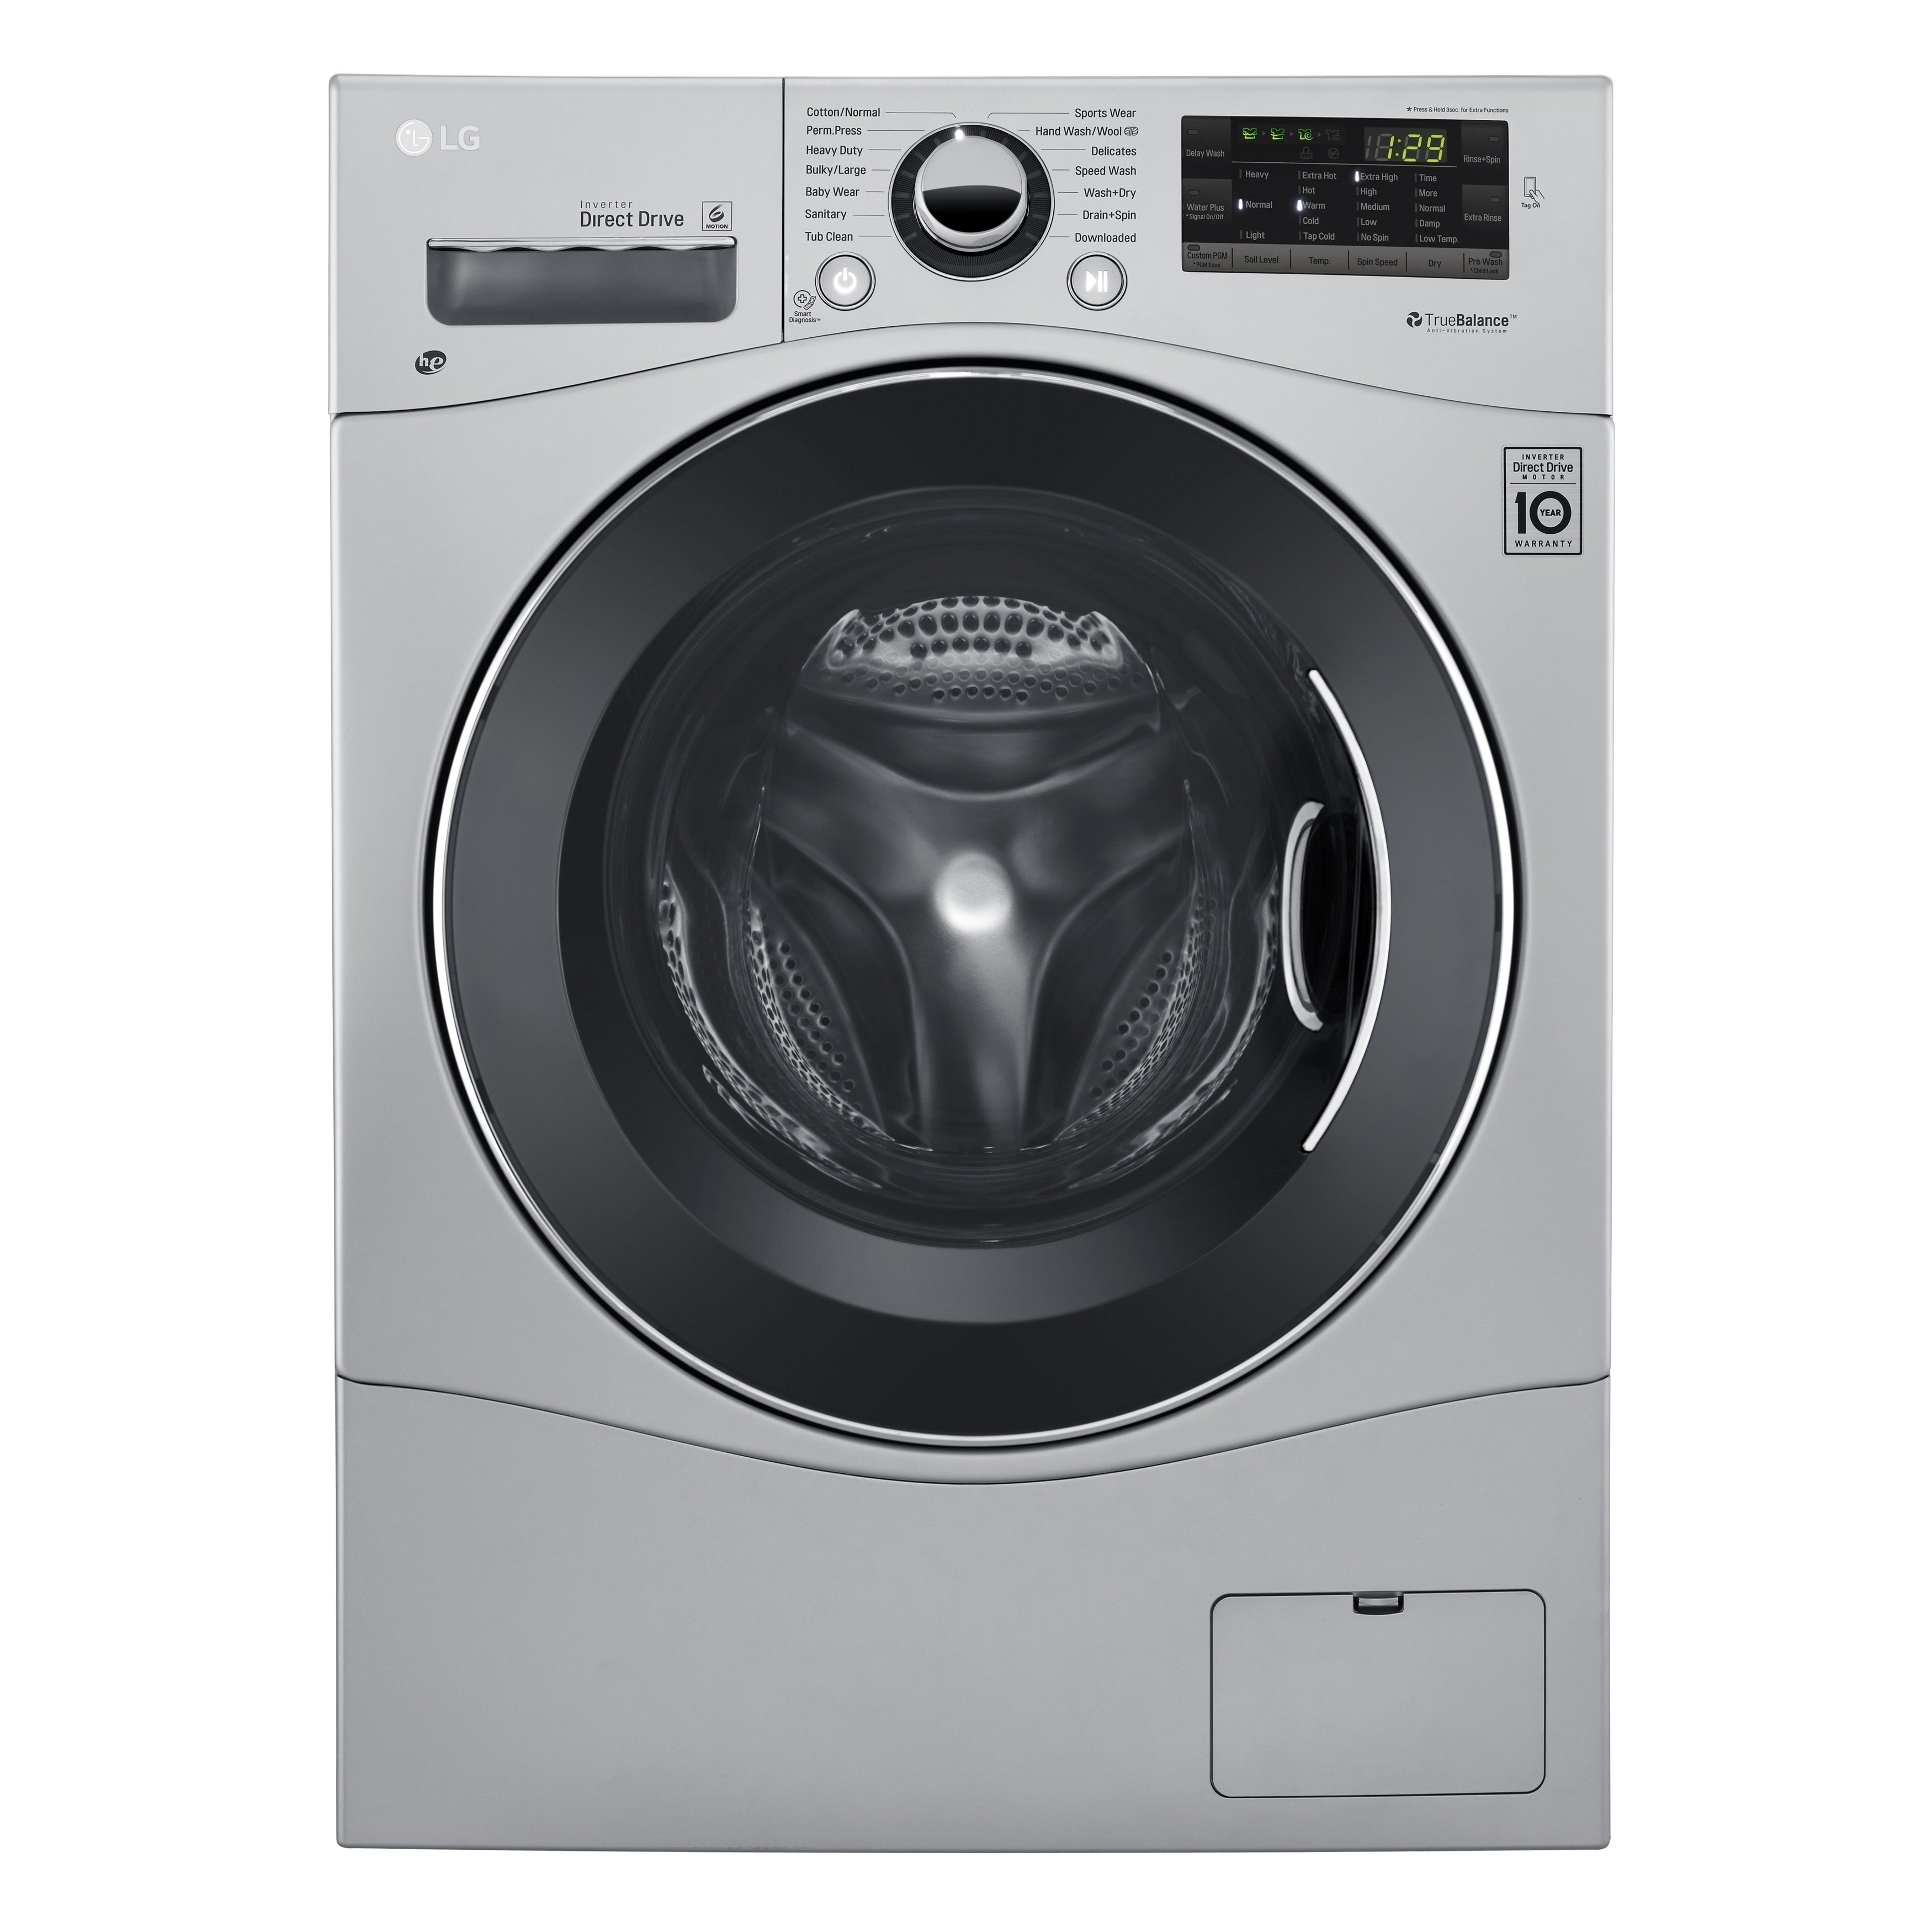 LG WM3488HS 2.3 cu.ft. Compact All-In-One Washer/Dryer in...